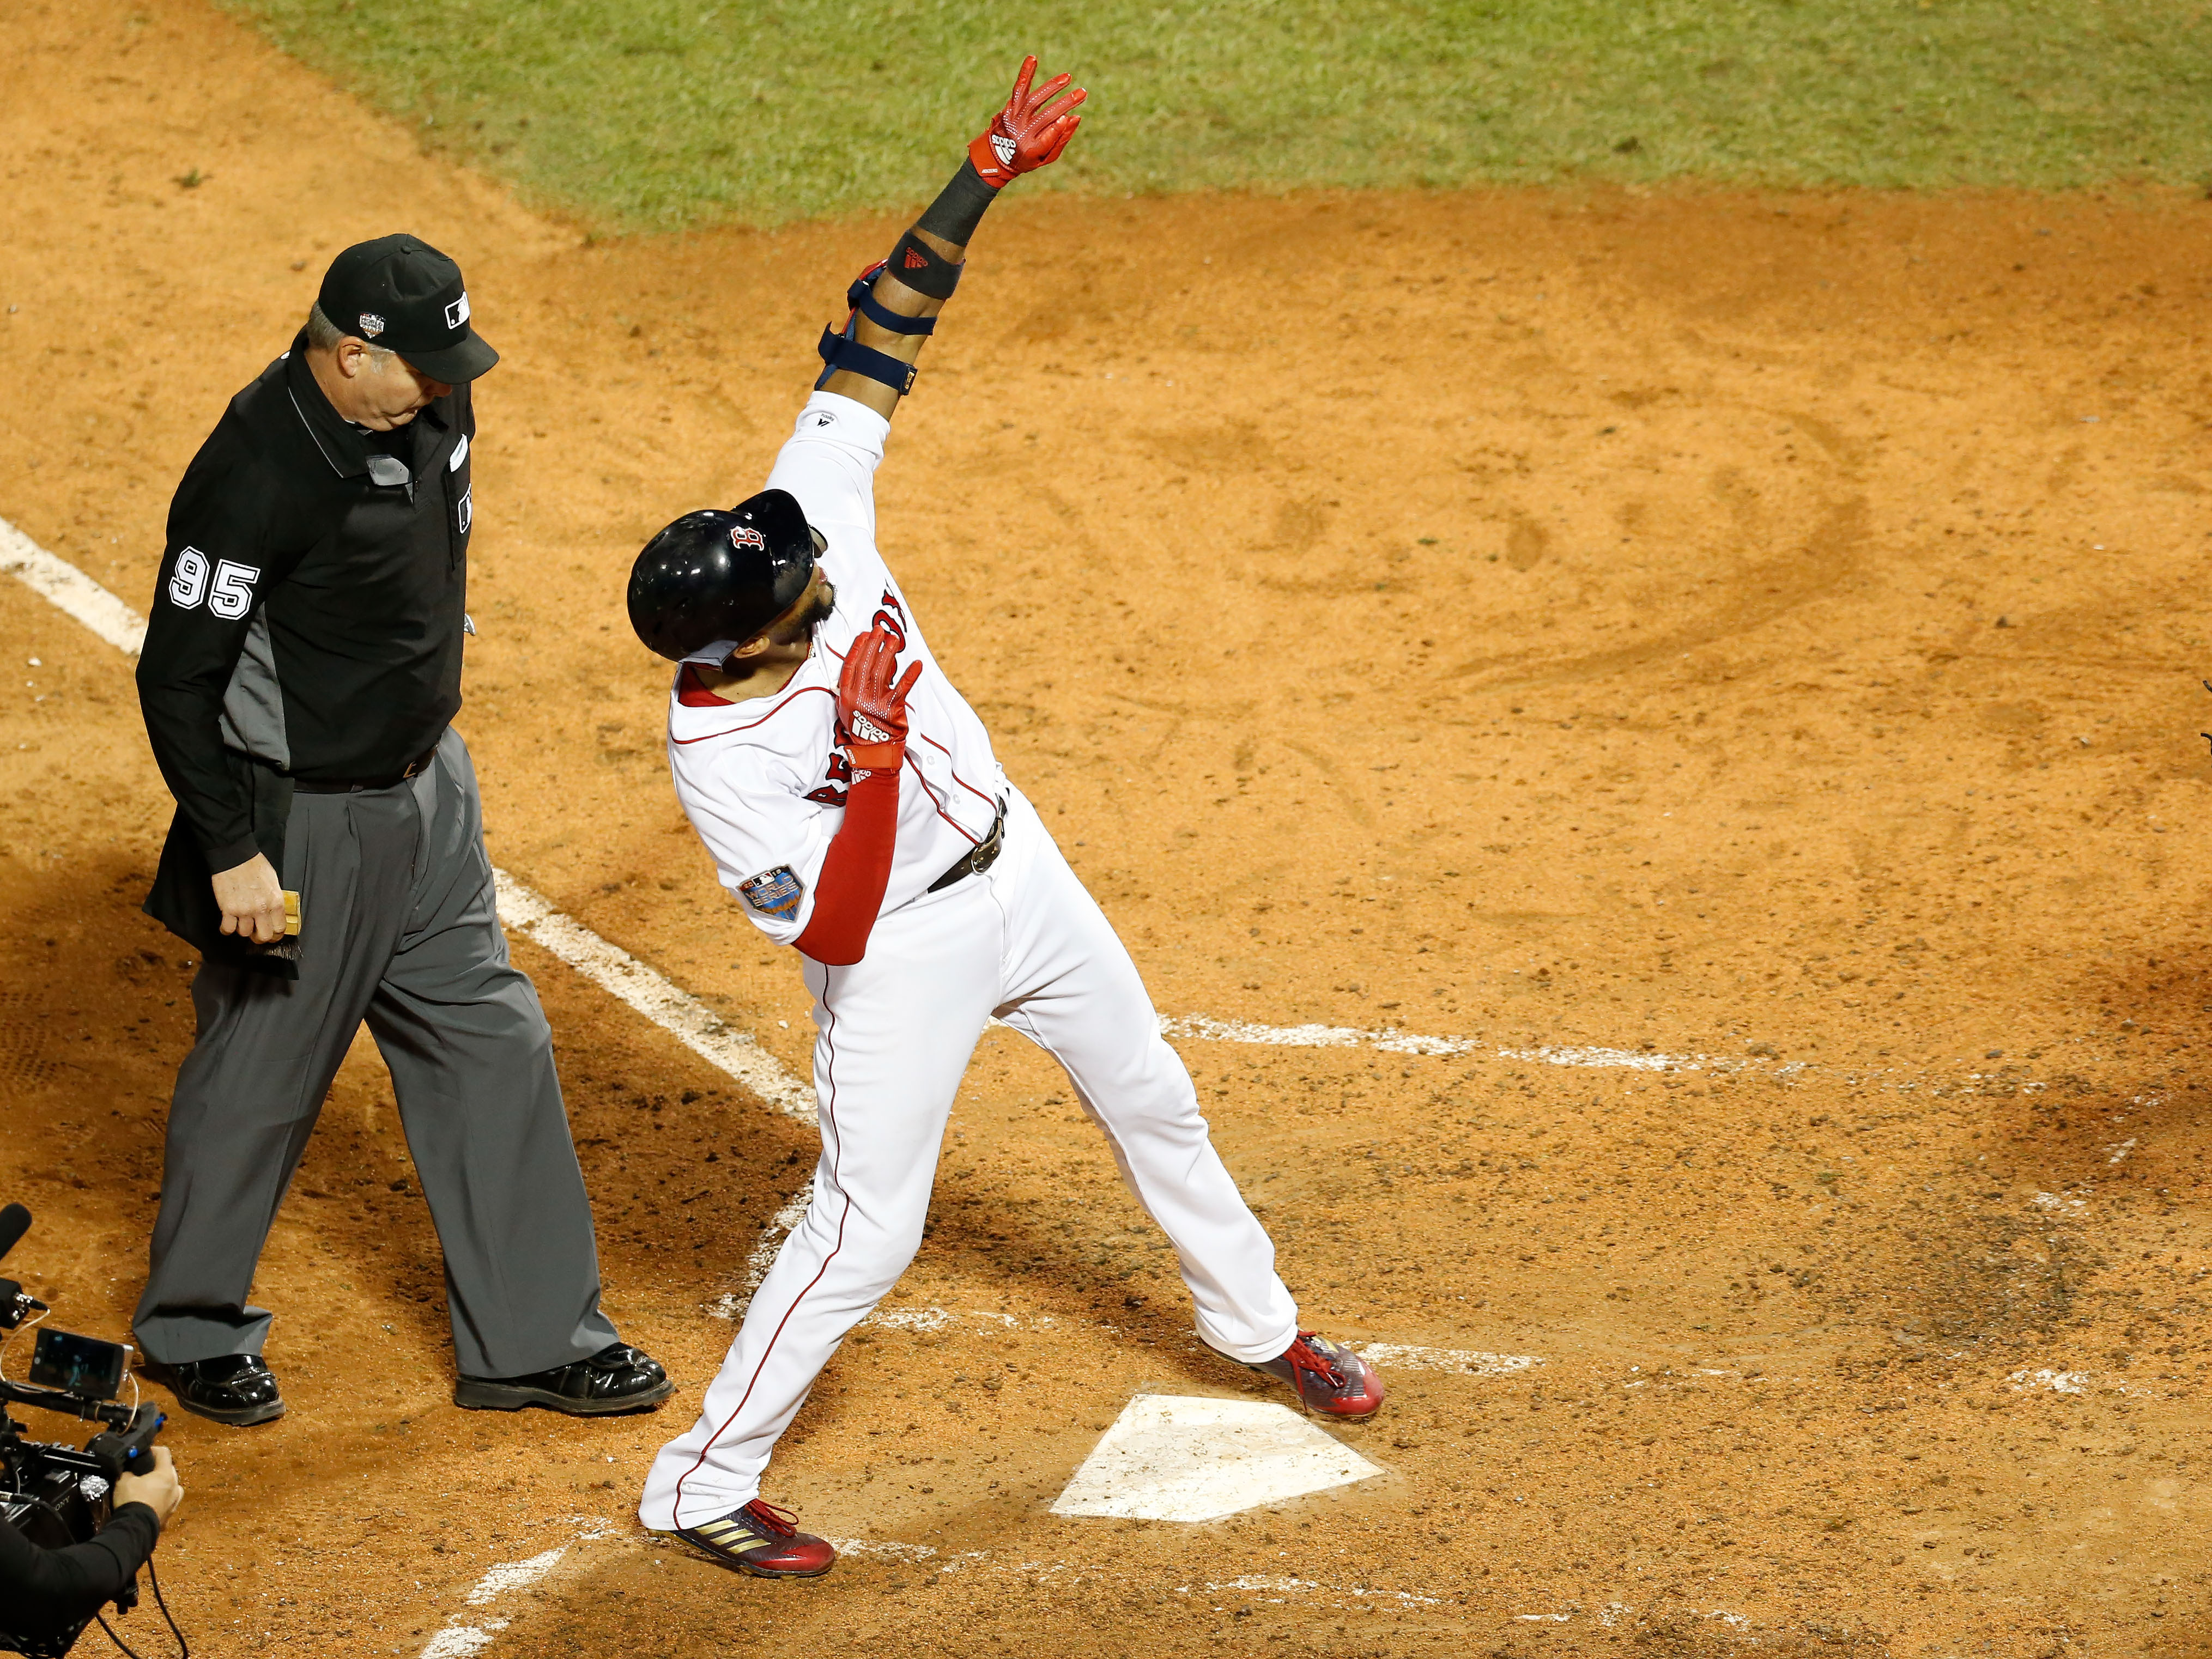 Dodgers-Red Sox World Series Game 2: Watch live stream online, preview and prediction